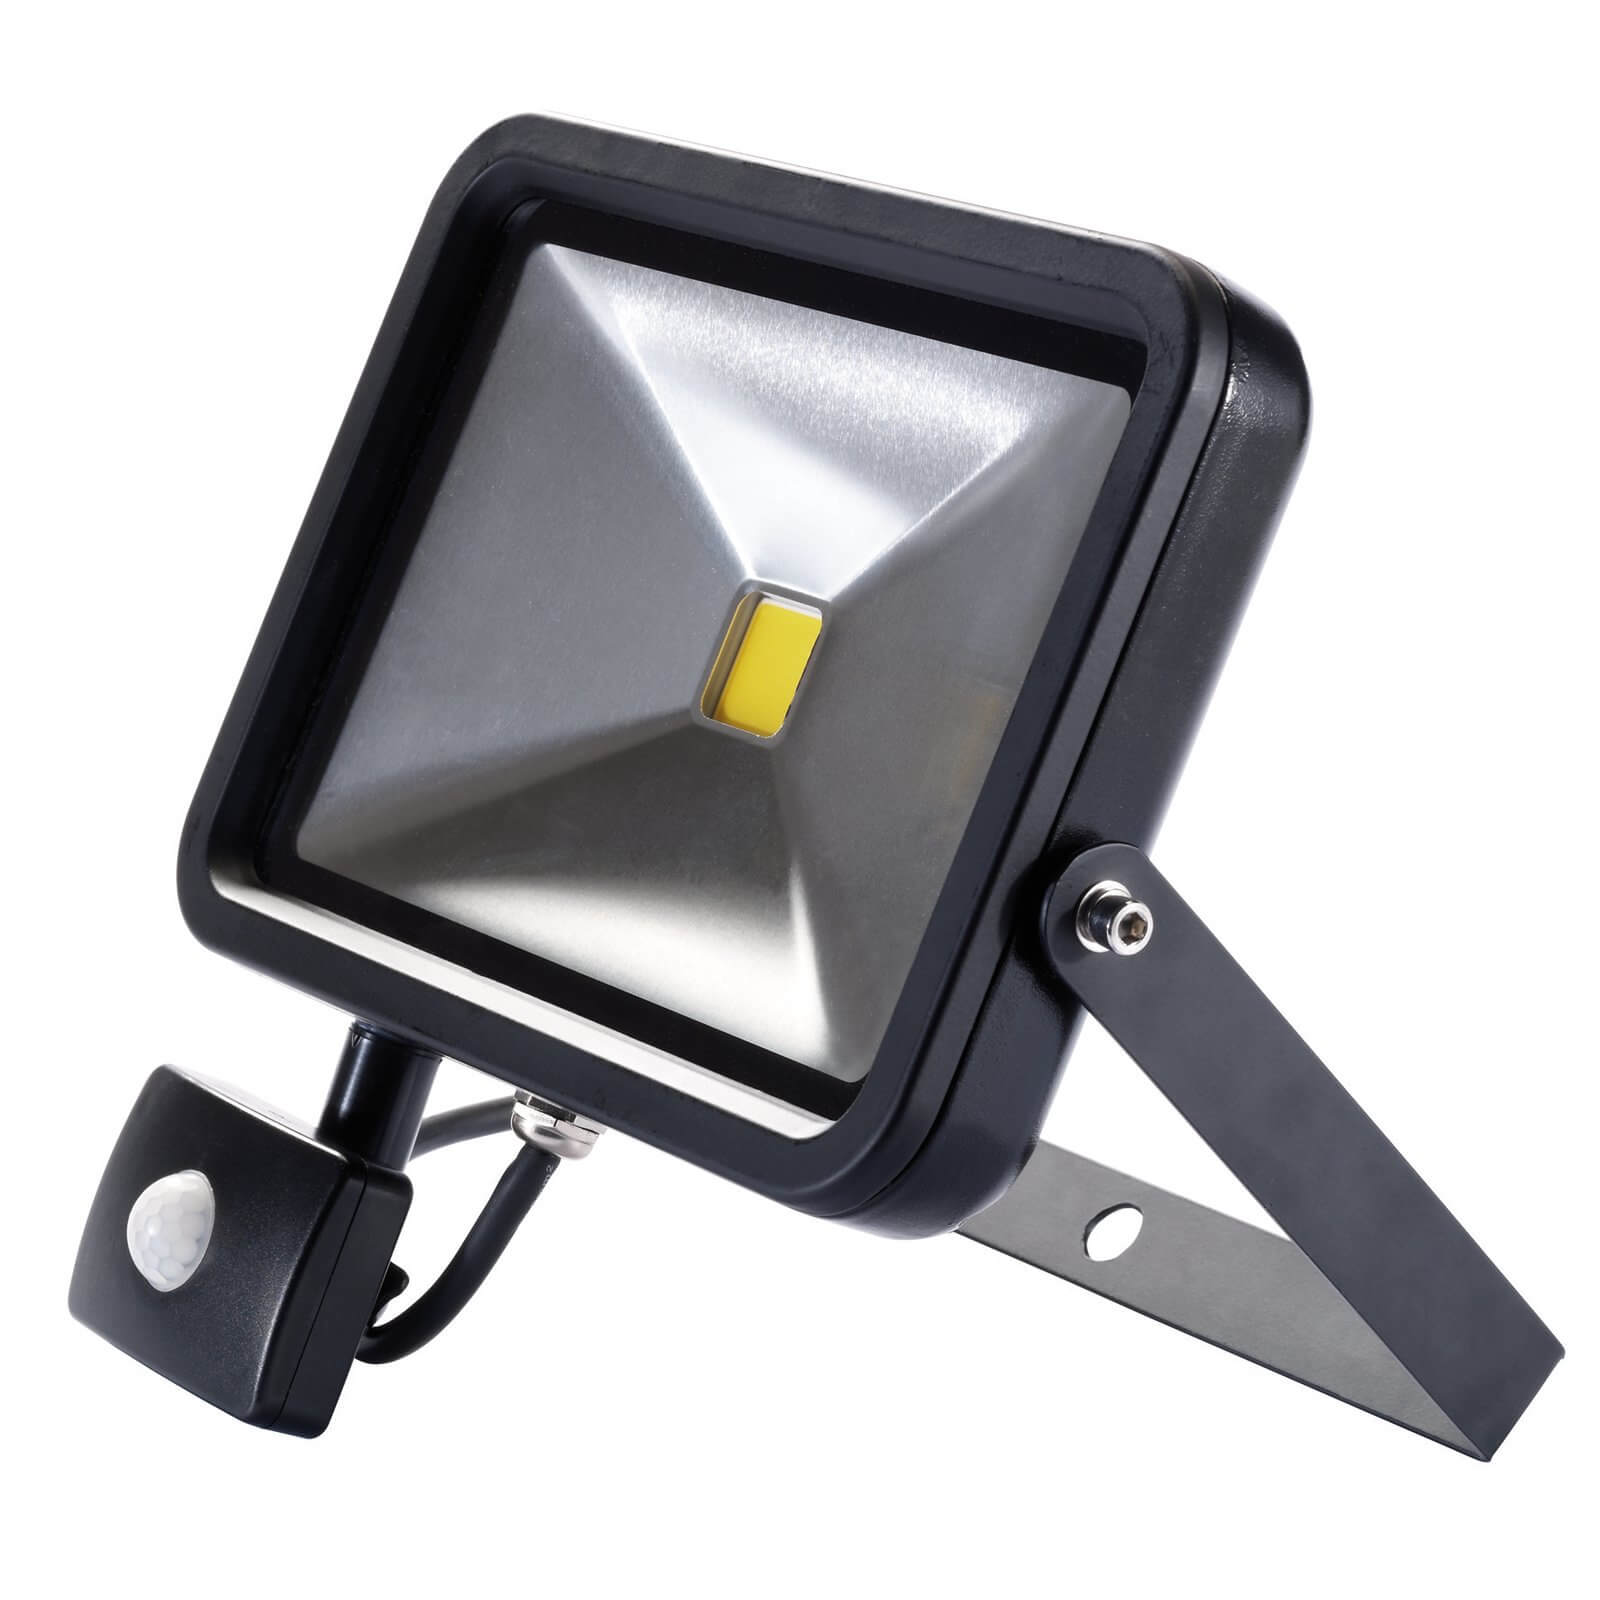 Image of Draper COB LED Slimeline Wall Mounted Floodlight With PIR 30 Watts